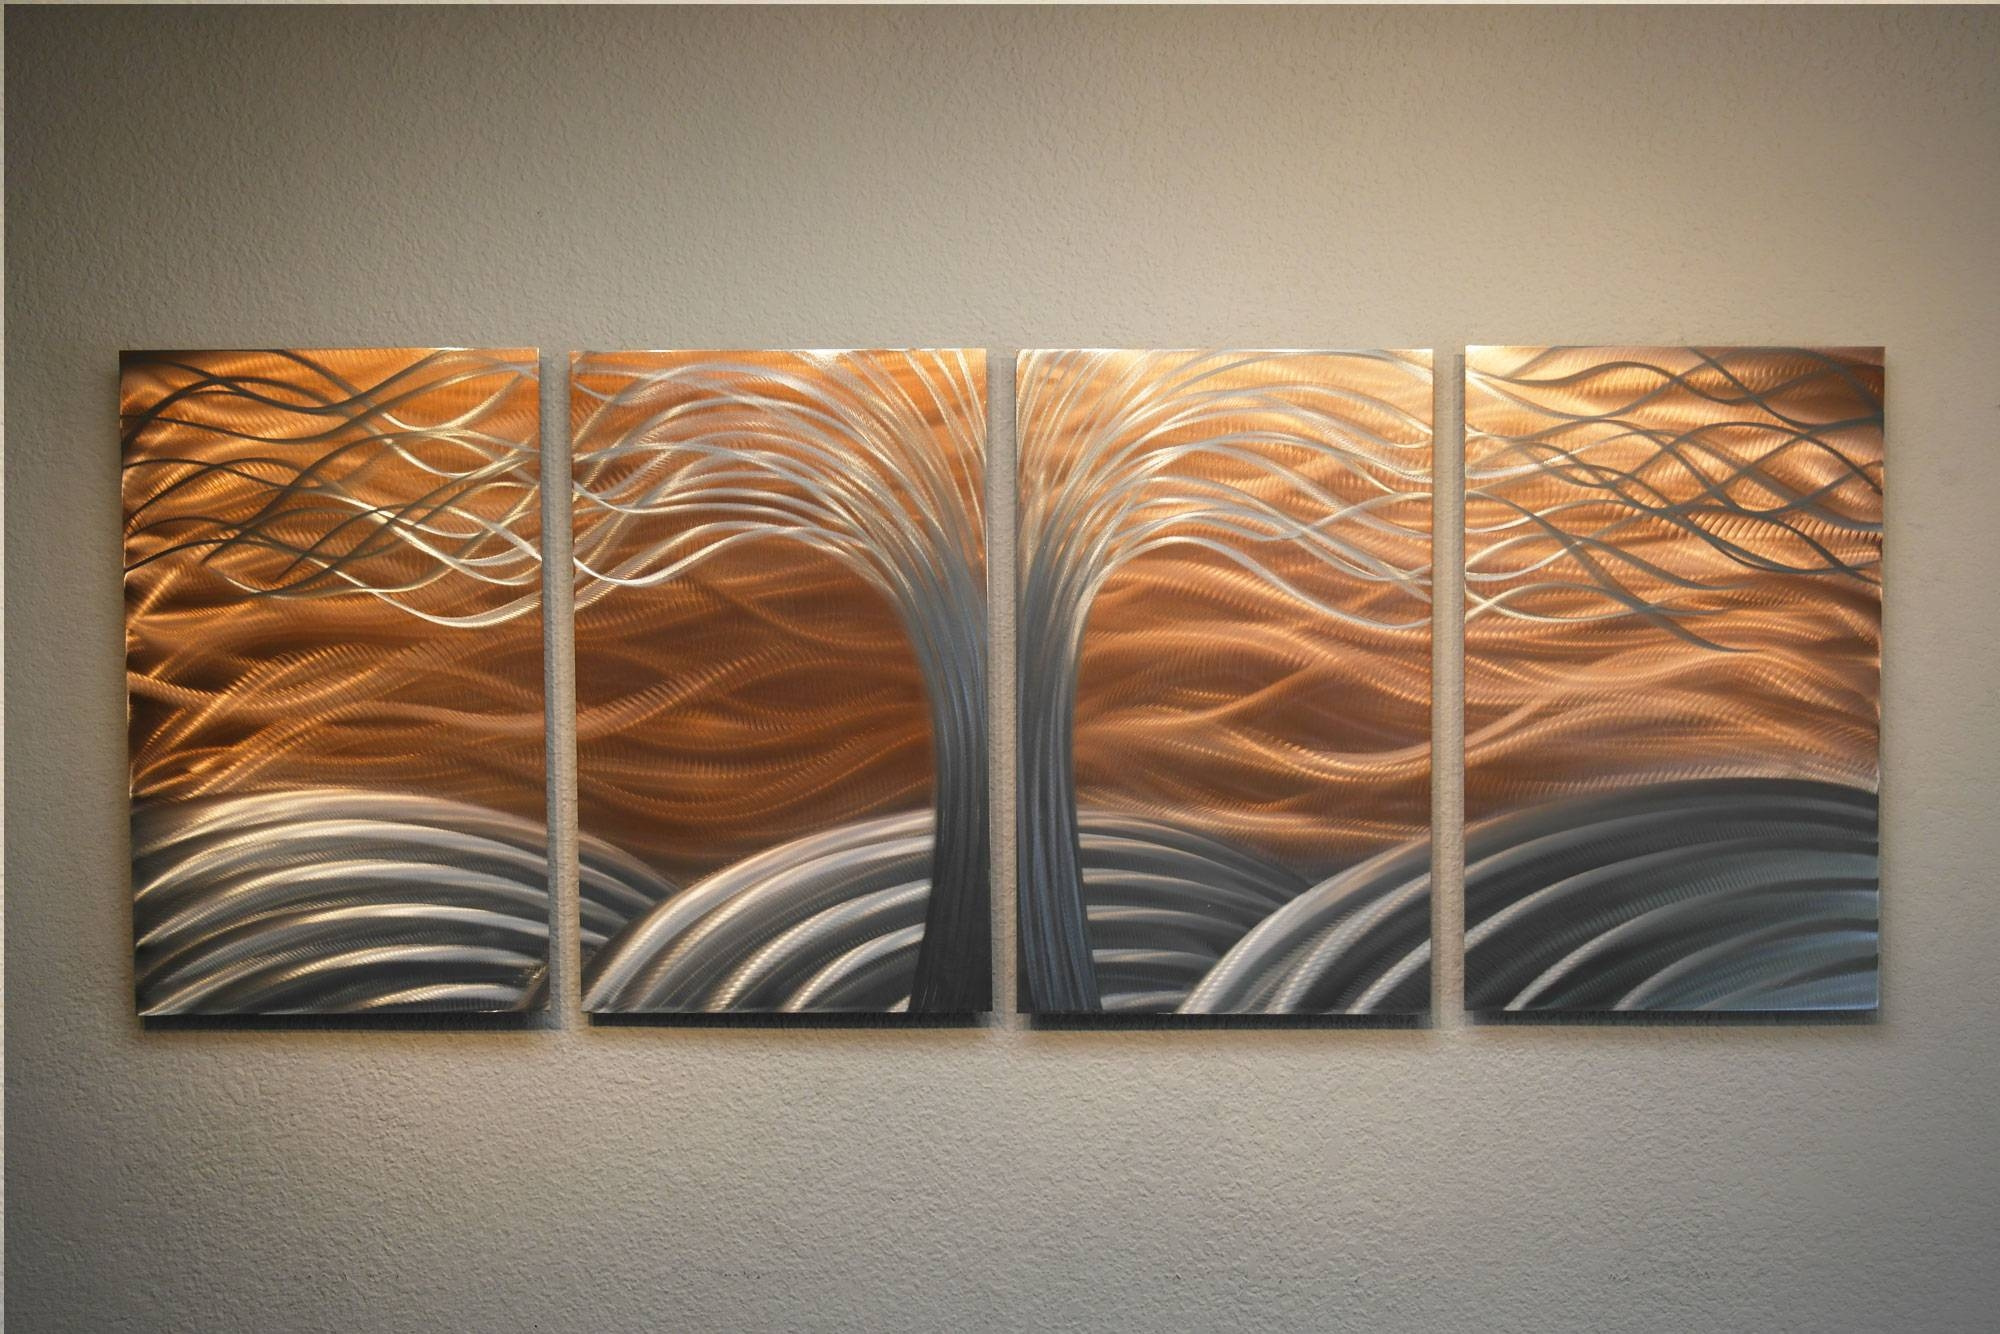 Tree Of Life Bright Copper – Metal Wall Art Abstract Sculpture Within Most Current Tree Of Life Metal Wall Art (View 18 of 20)